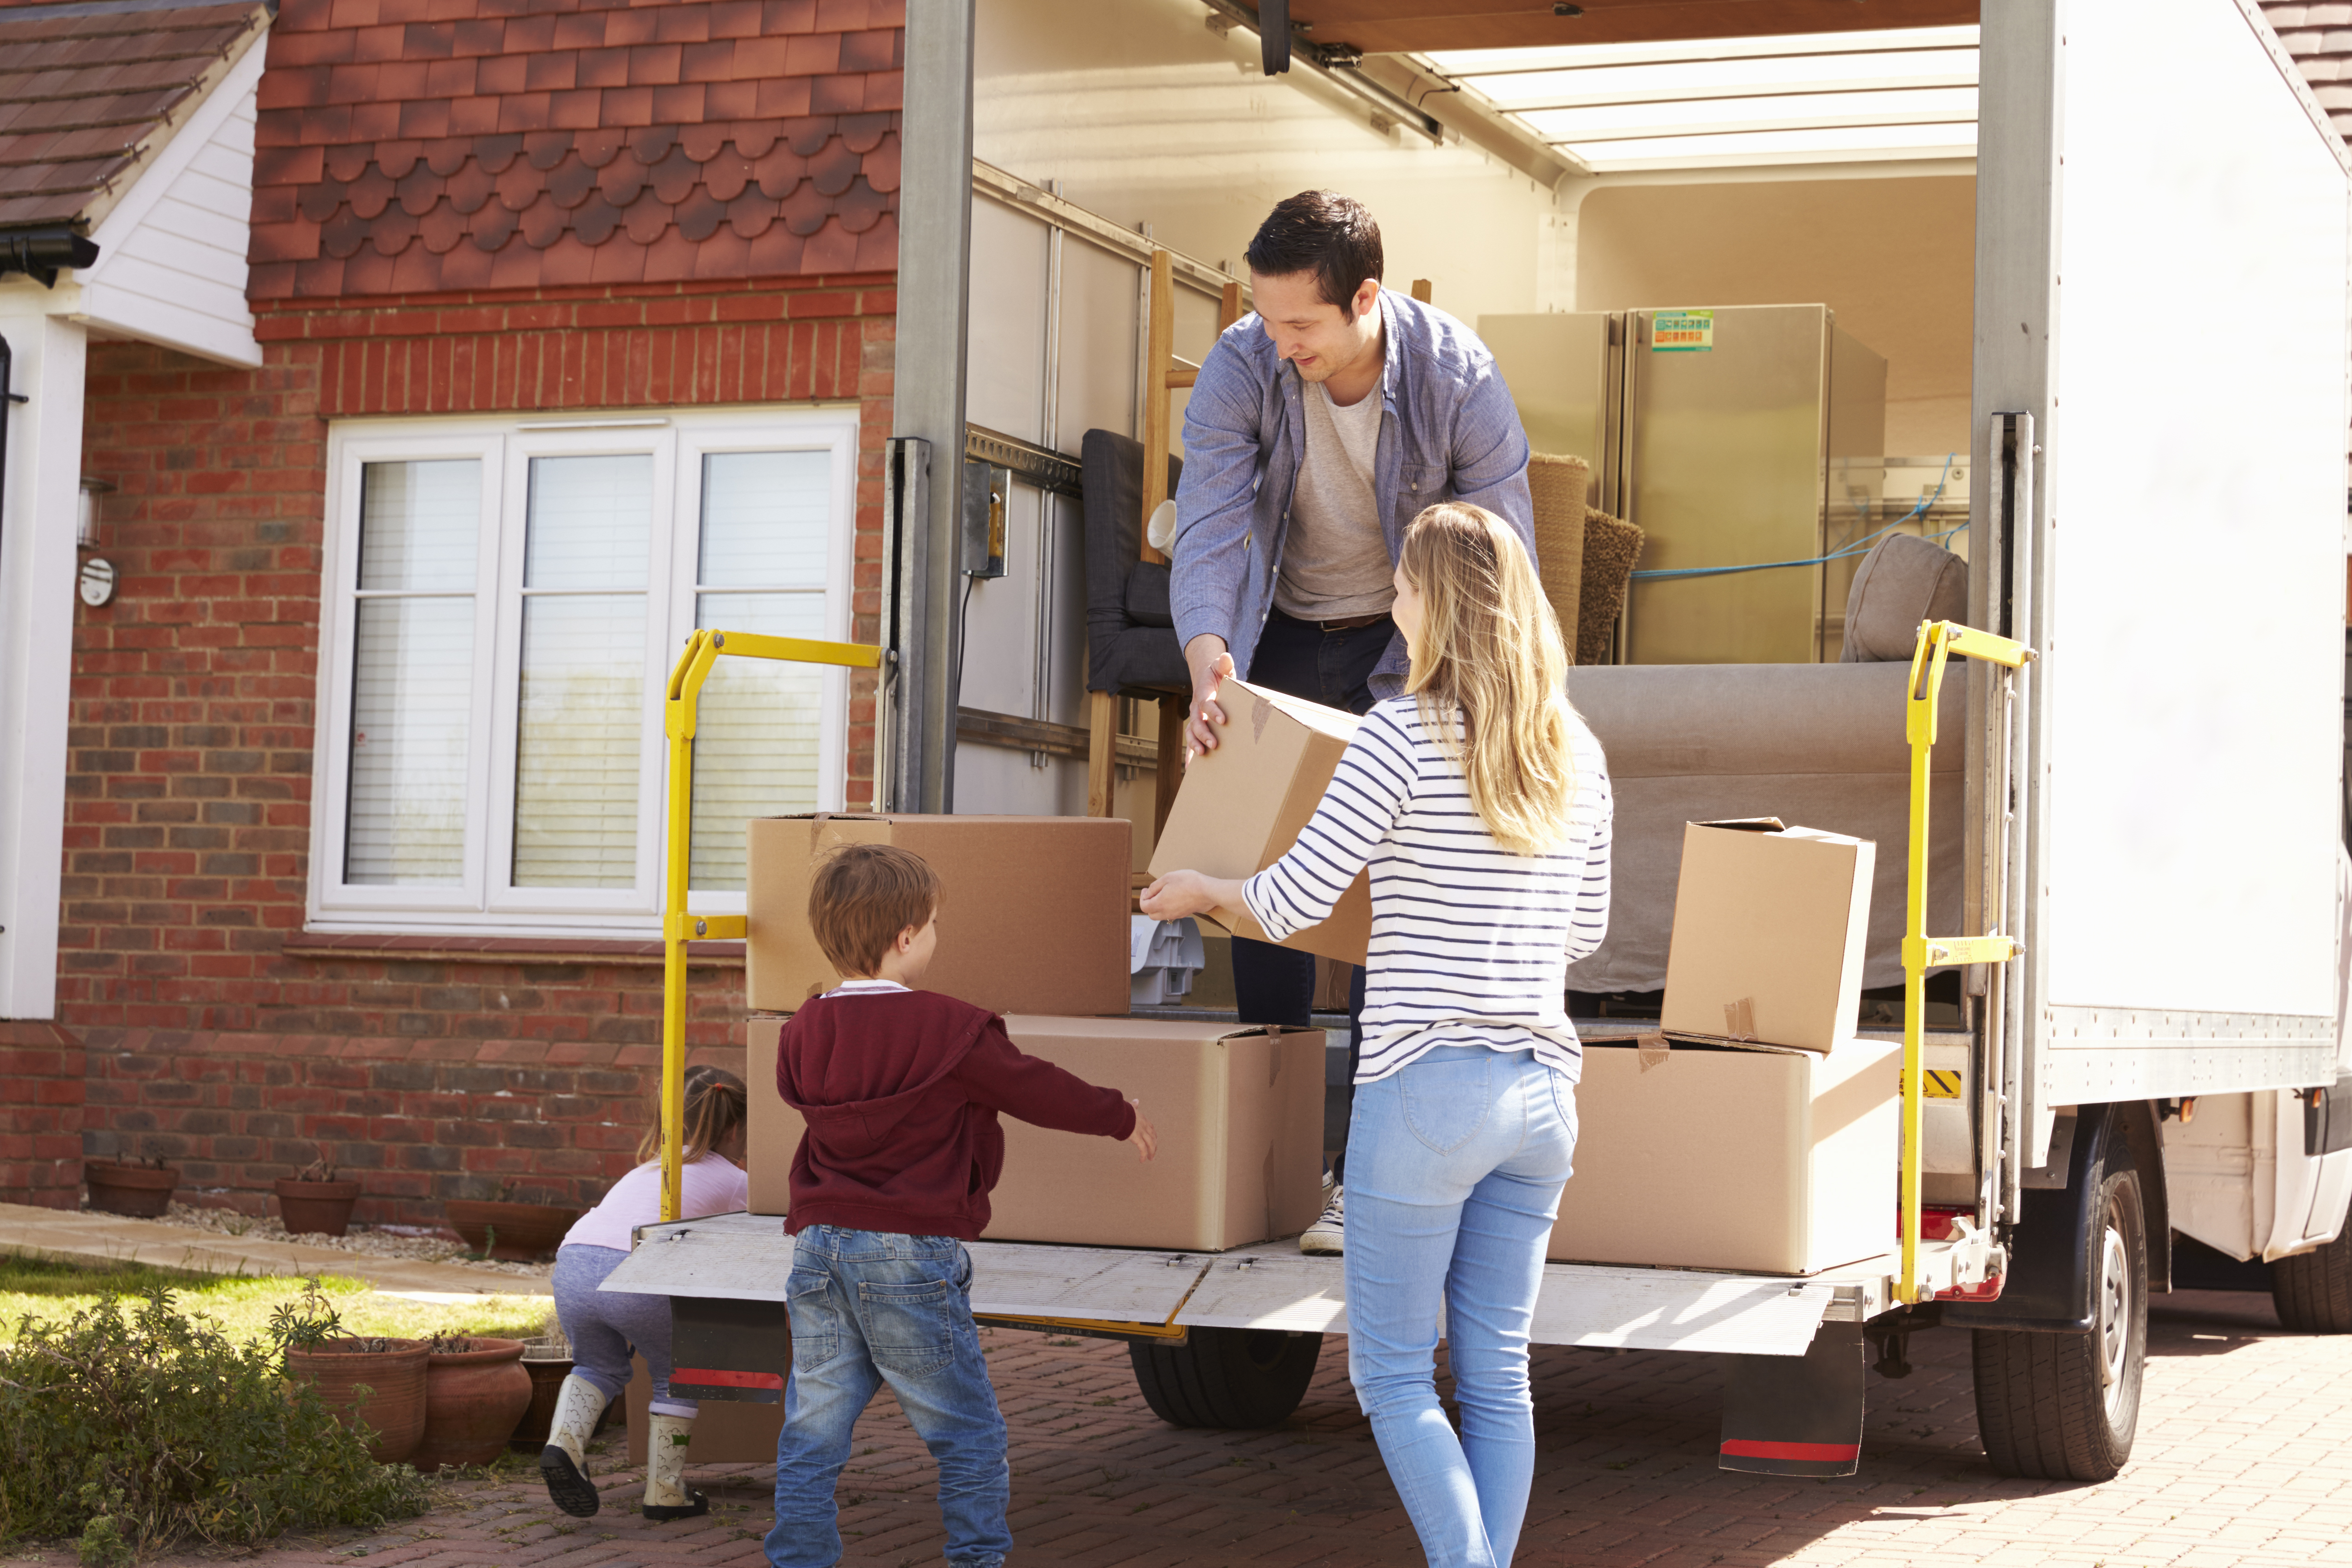 5 Tips for Moving House for New Homeowners